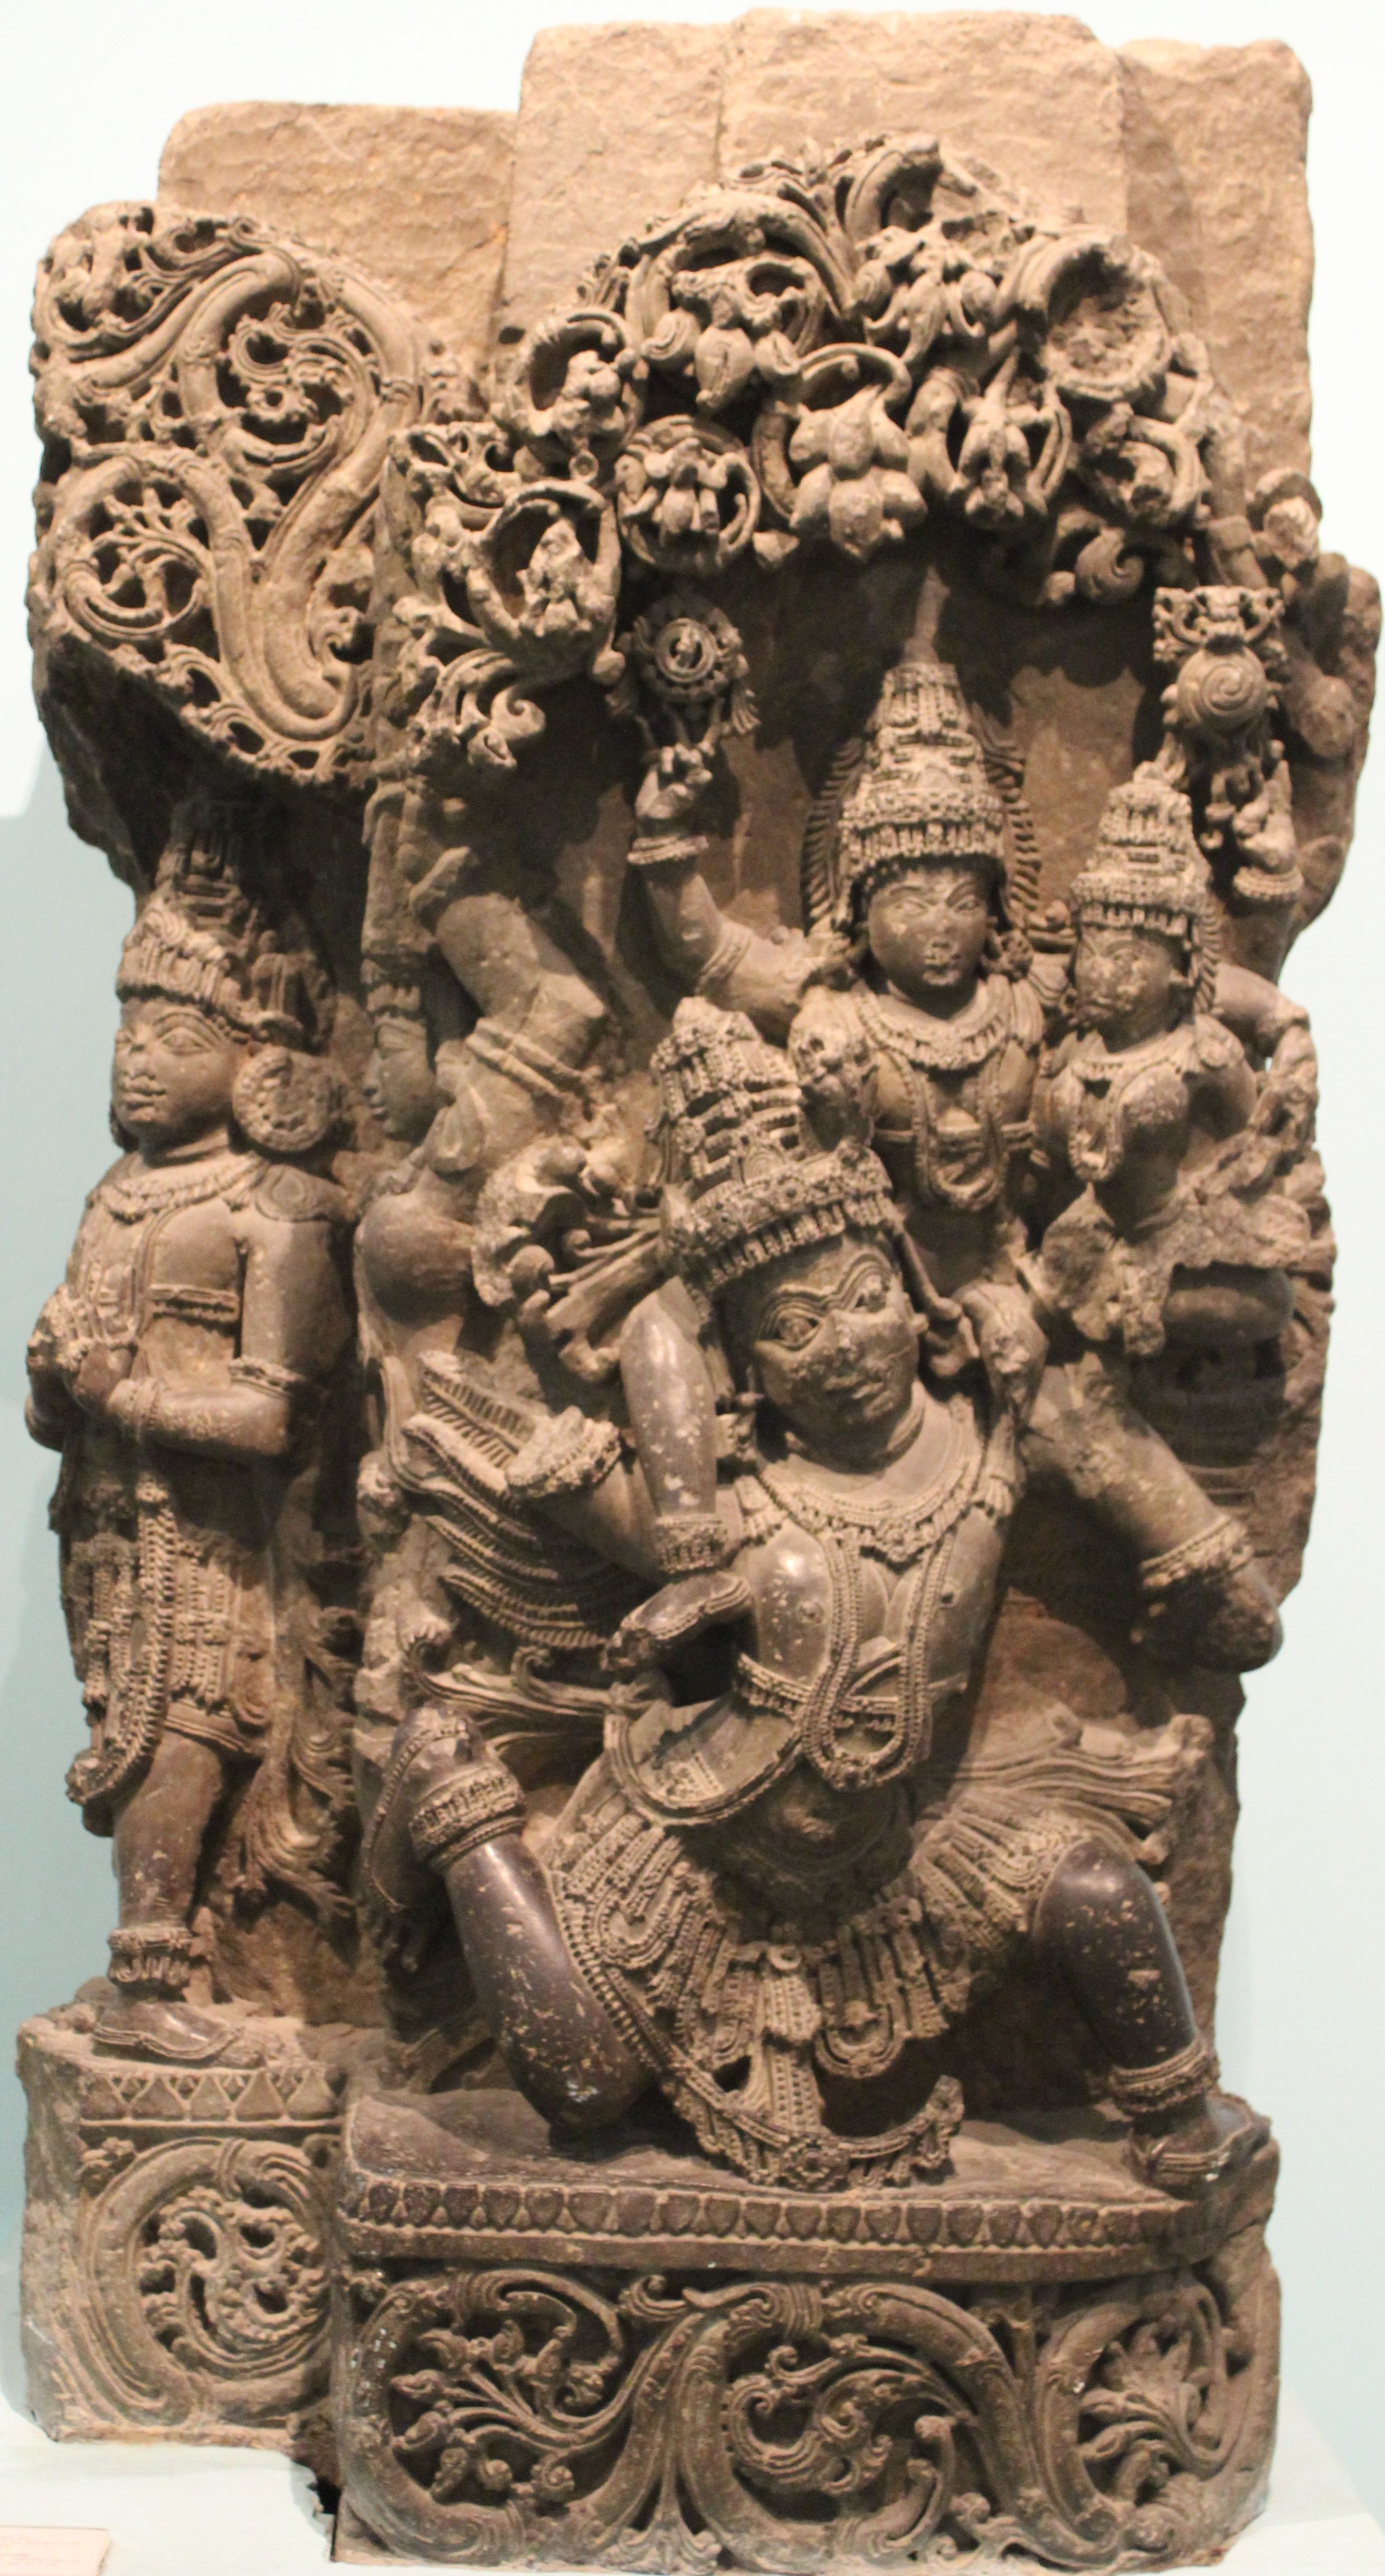 Intricately carved sculpture hoysala dynasty national museum